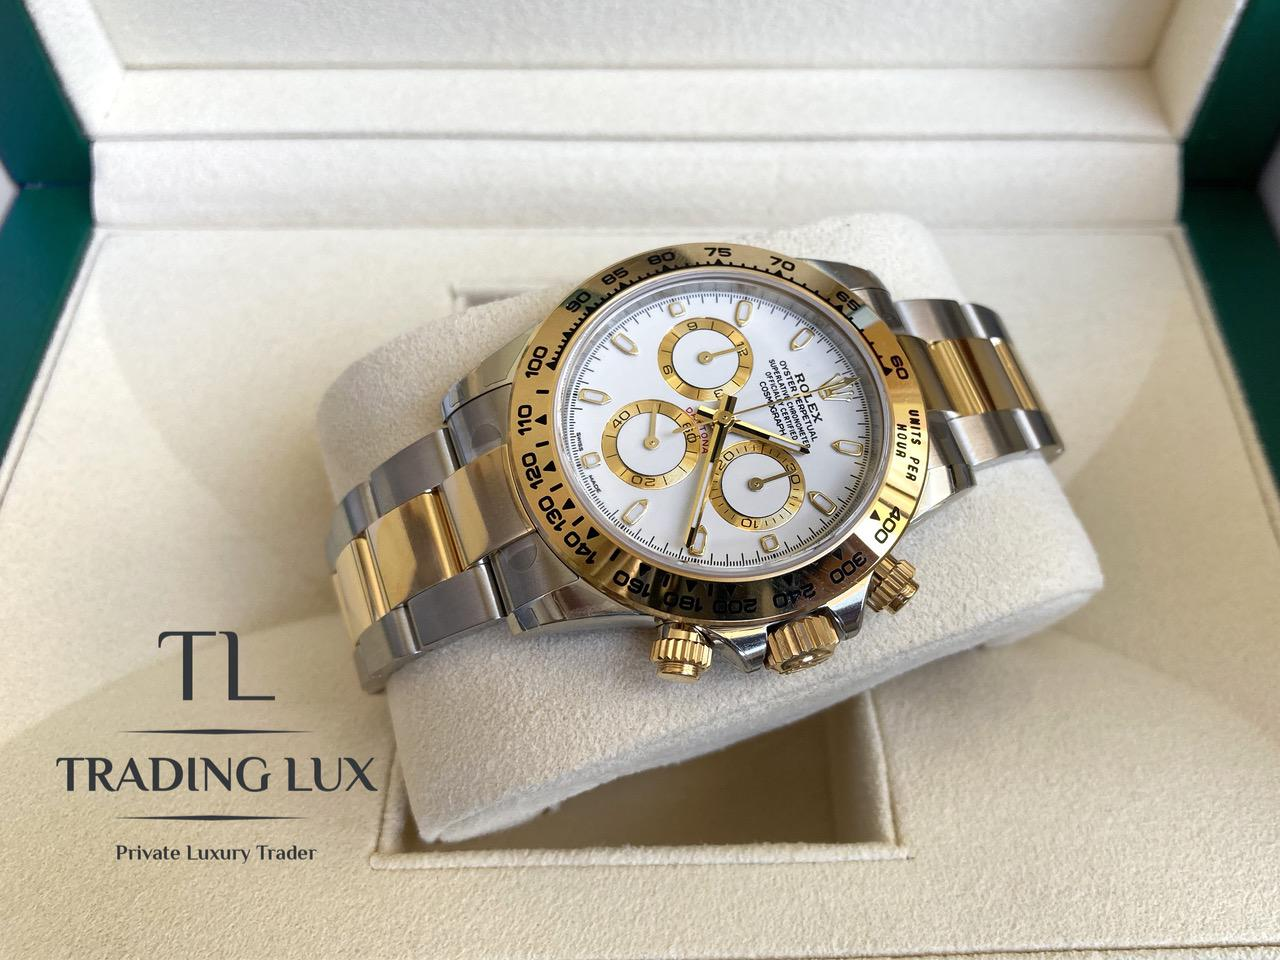 Rolex-Daytona-116503-Gold-Steel-9-1